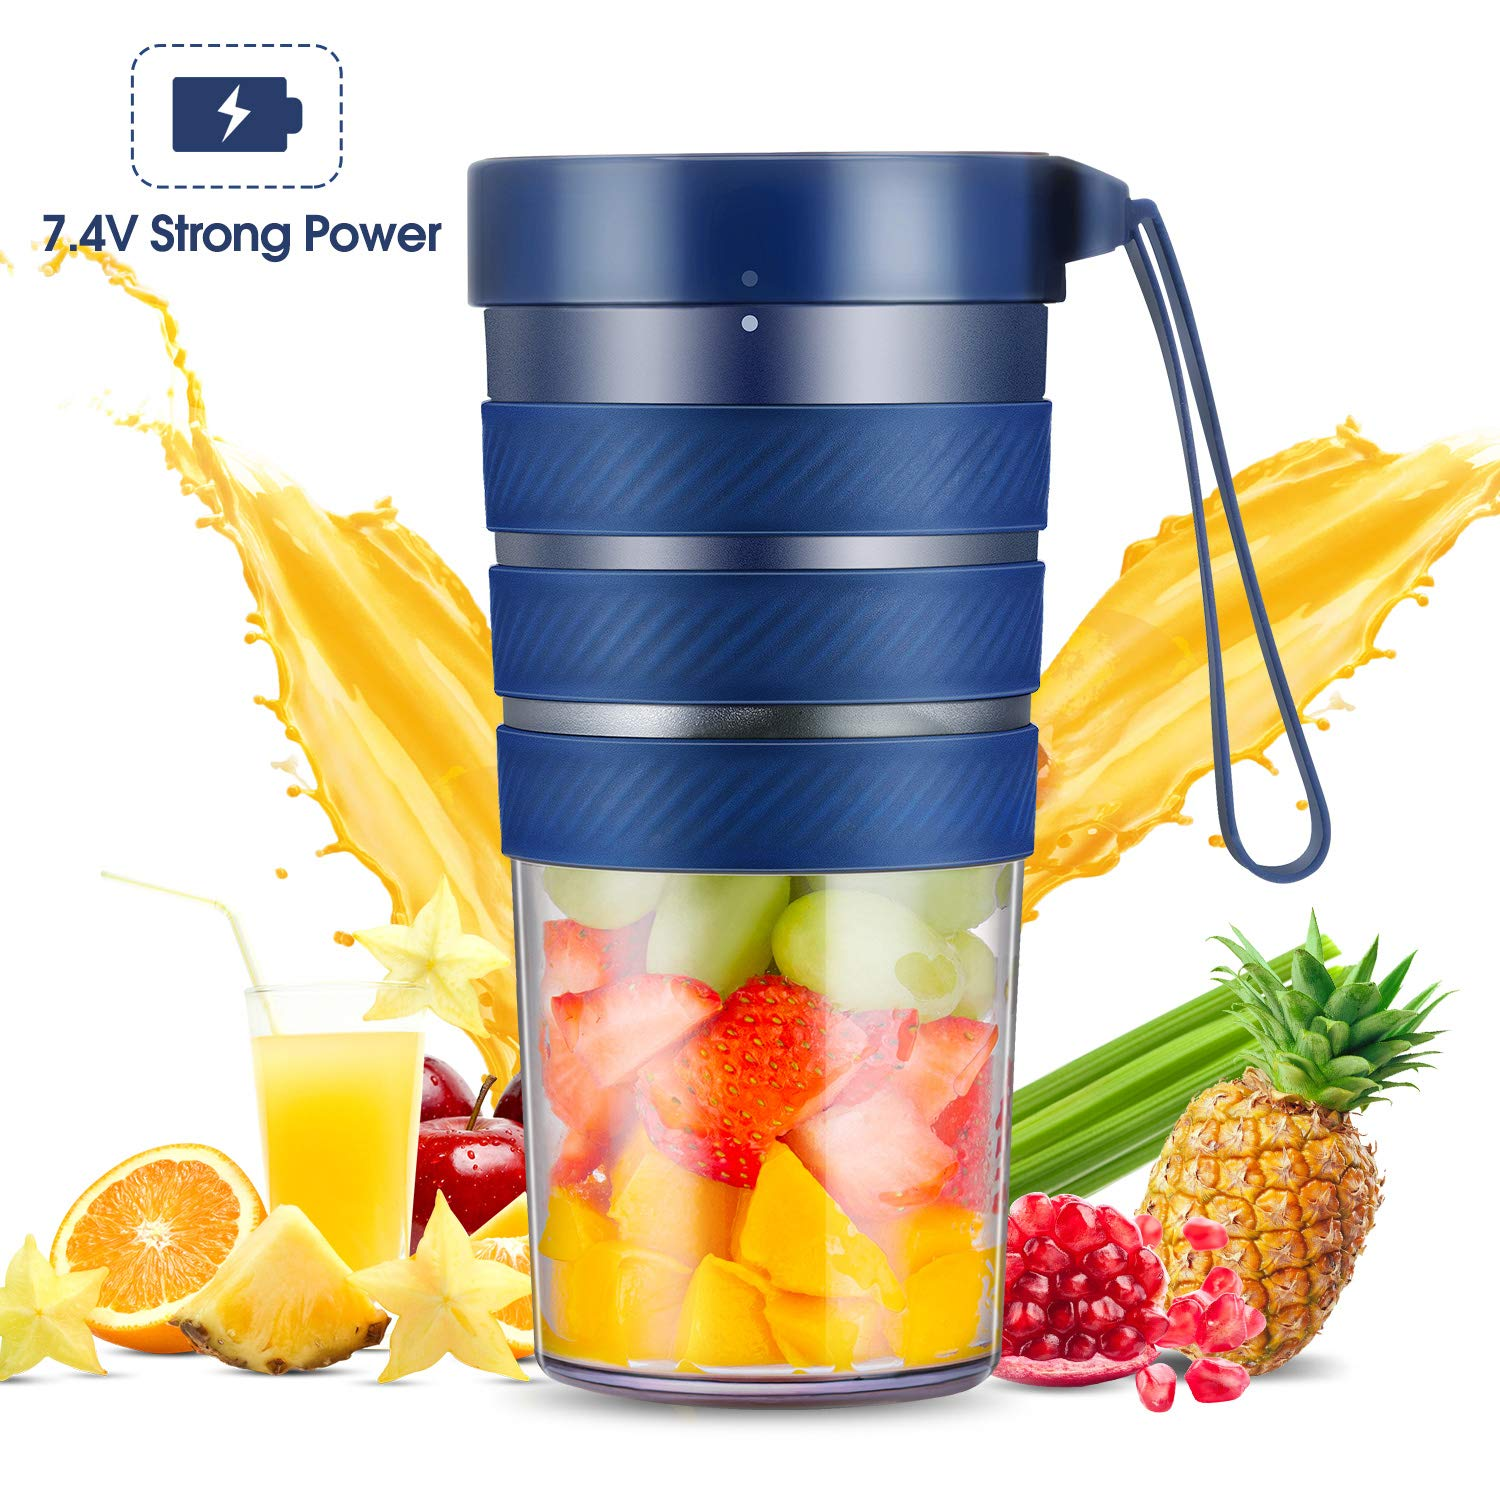 Portable Blender, Mini Smoothie Blender with Rechargeable Battery 7.4V Strong Power, 10oz Cordless Personal Blender Fruit Juicer Mixer for Office Gym Outdoors Travel, IP68 Waterproof, BPA Free by Homendless